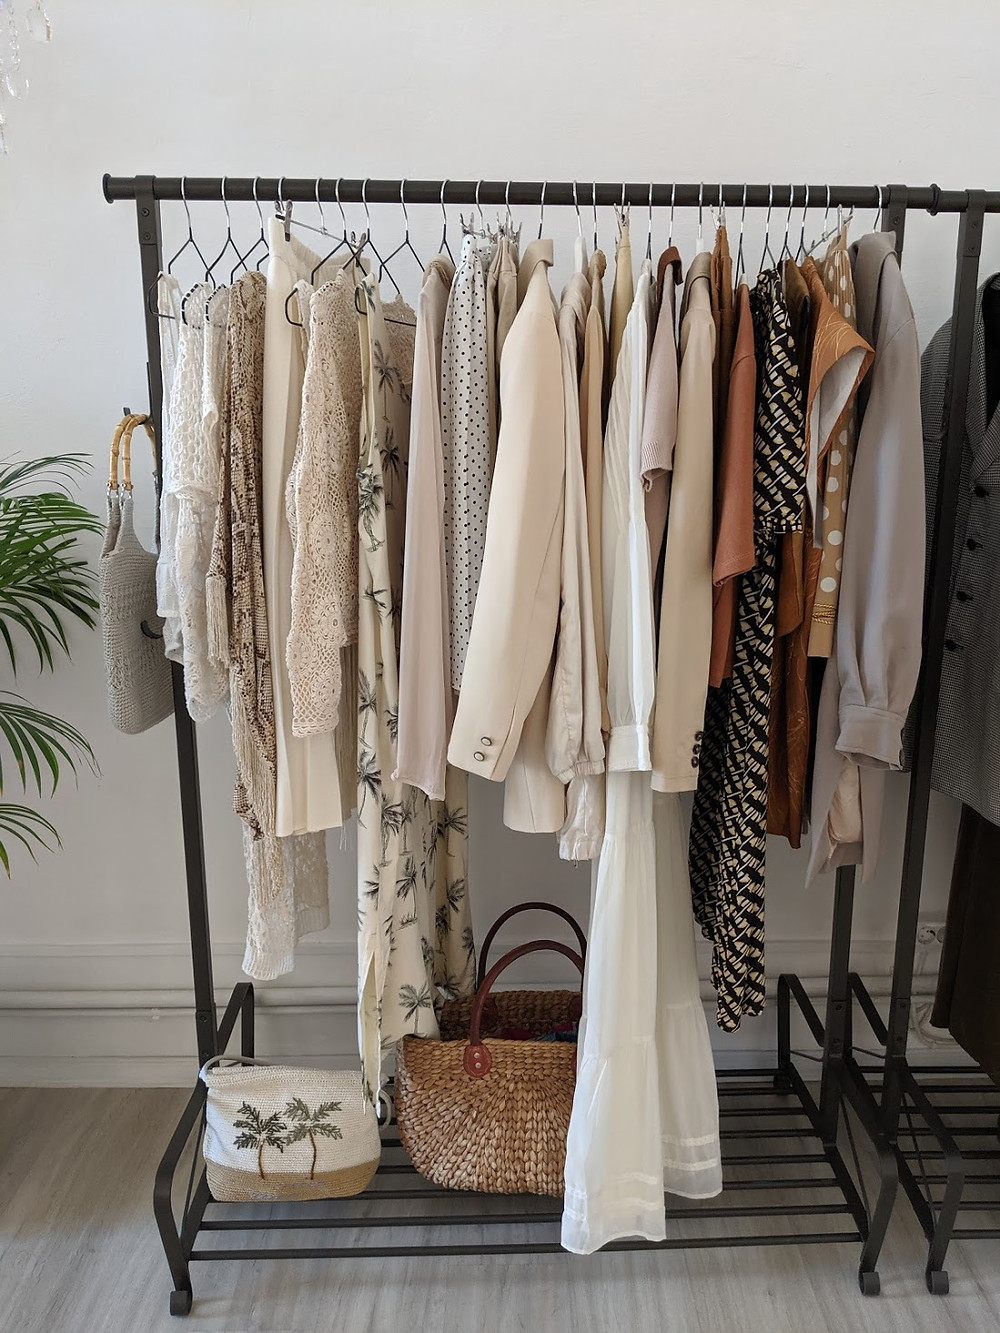 Vintage clothing hanging on the rail.